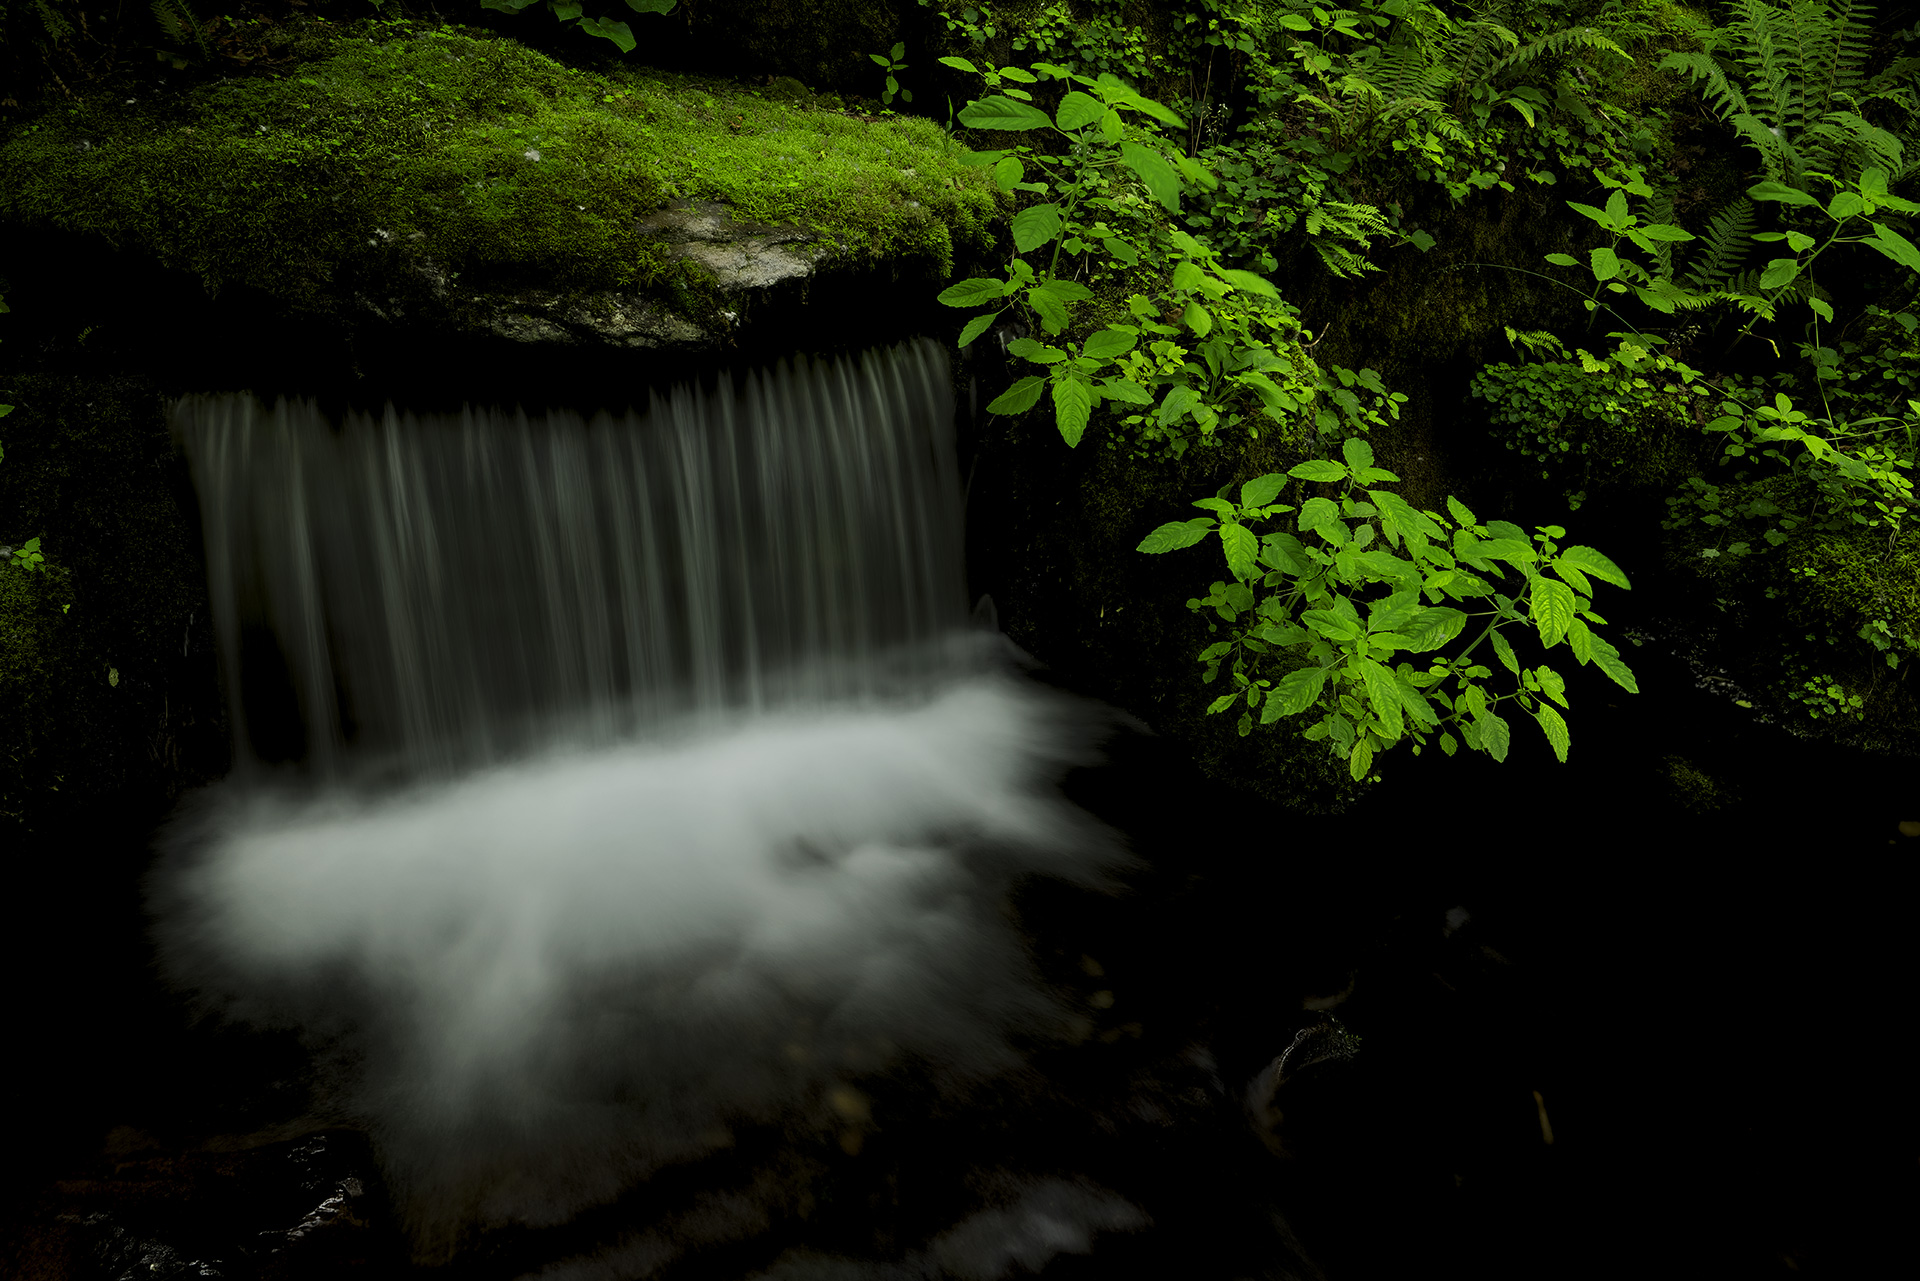 View towards waterfall with green leaves in foreground, photographed using Panasonic Lumix S PRO 24-70mm f2.8 lens